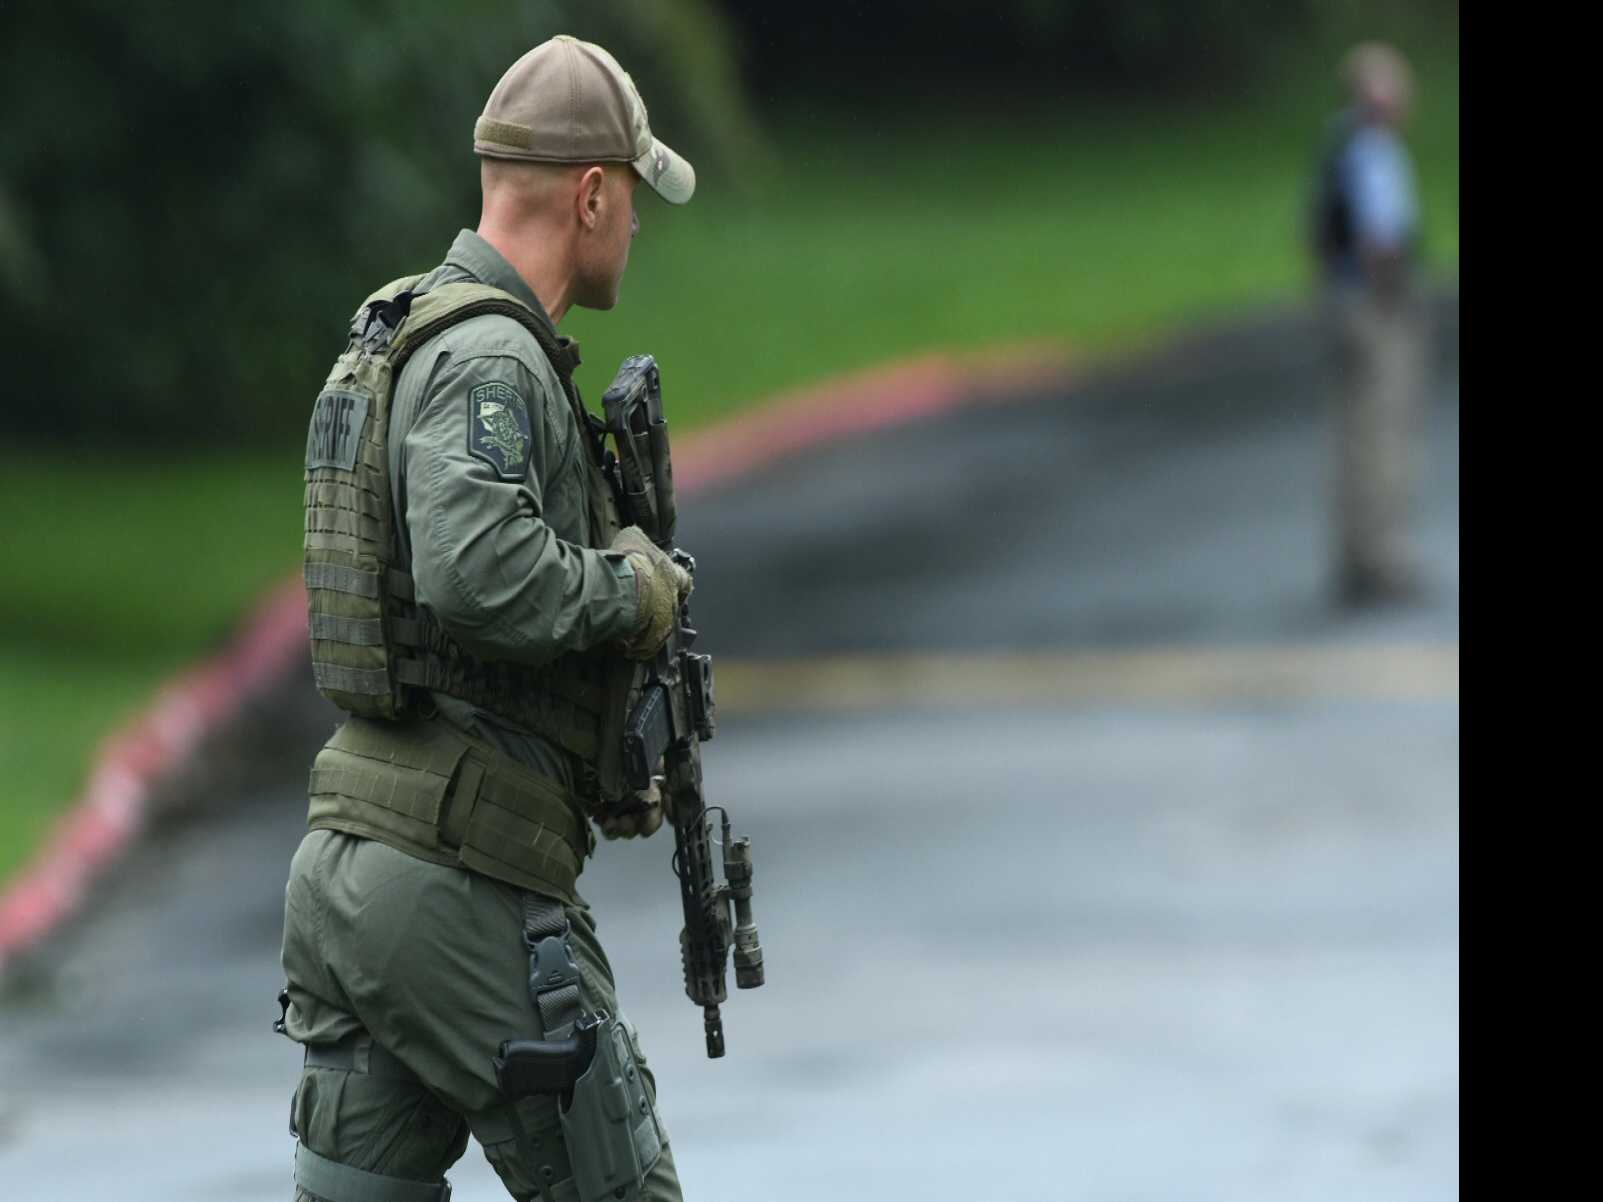 Official: 3 people killed in Maryland shooting